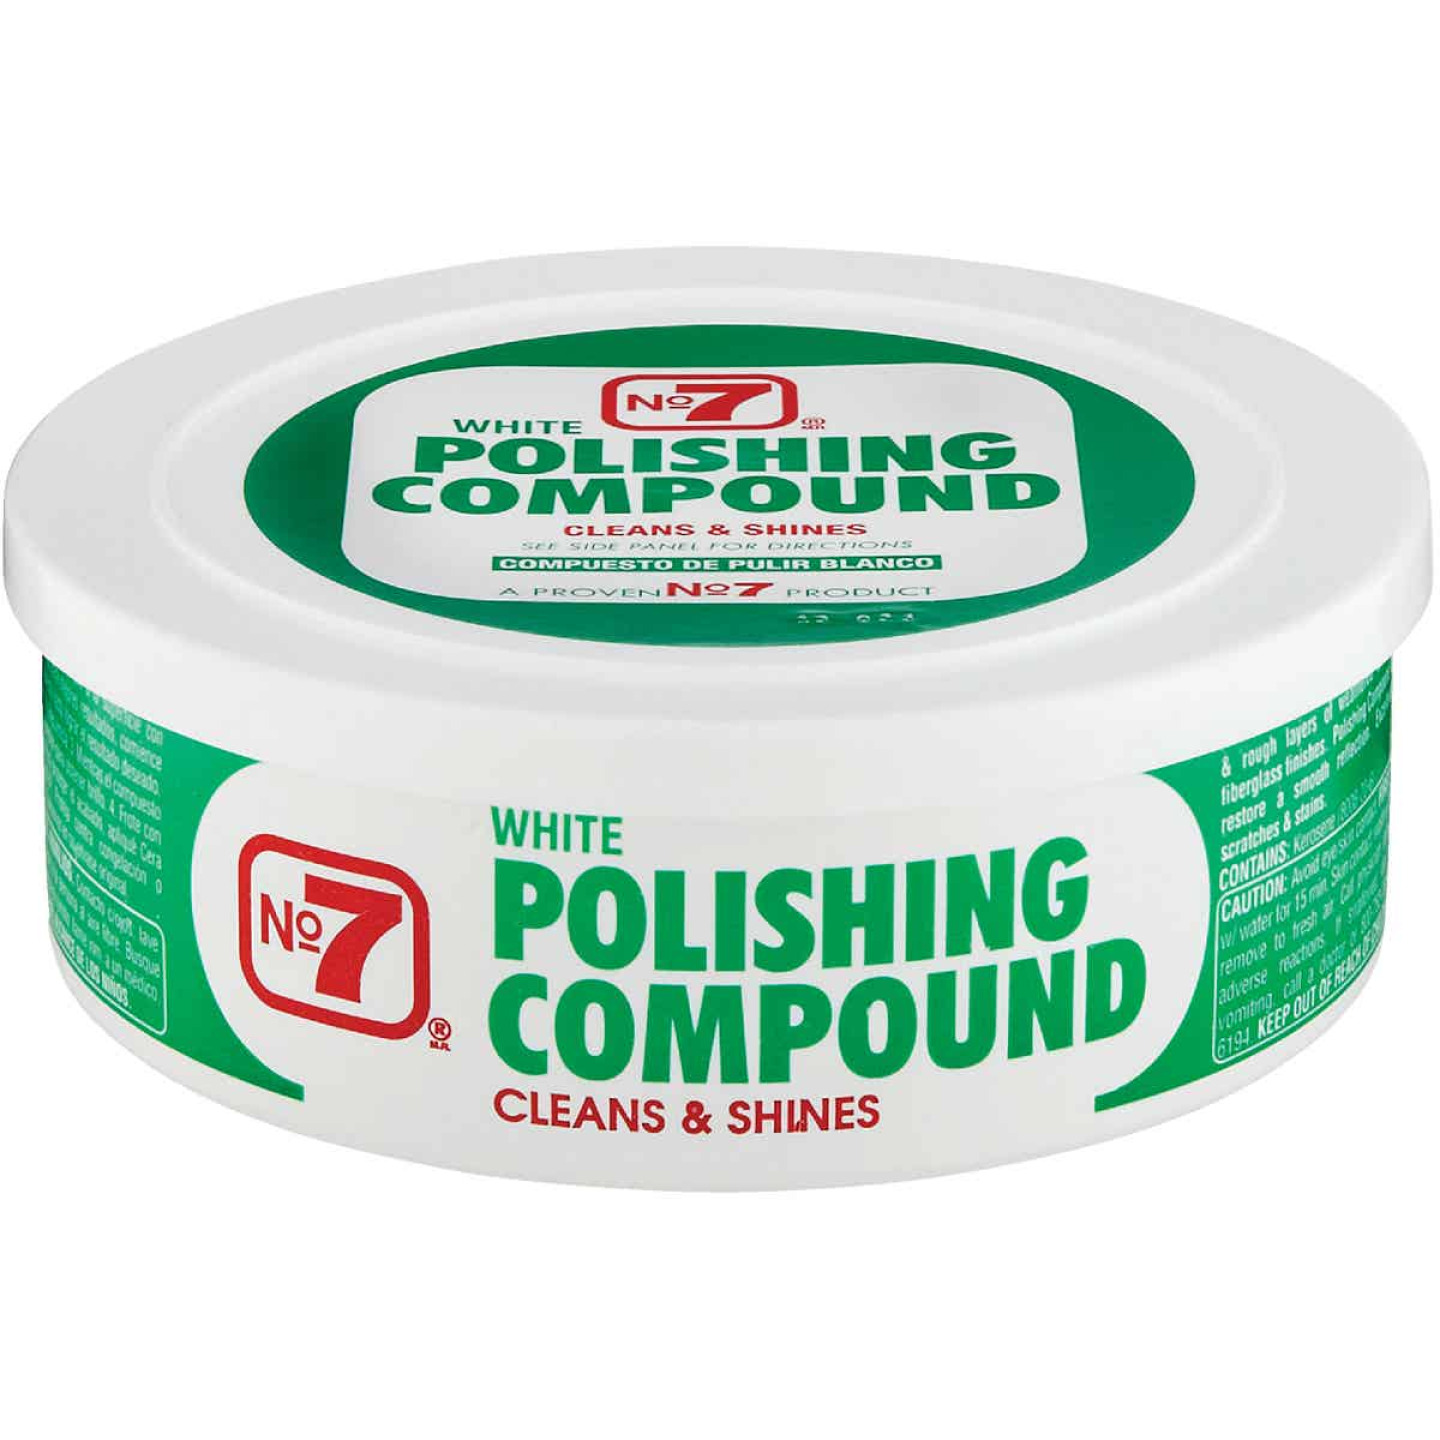 NO. 7, 10 Oz. Paste White Polishing Compound Image 1